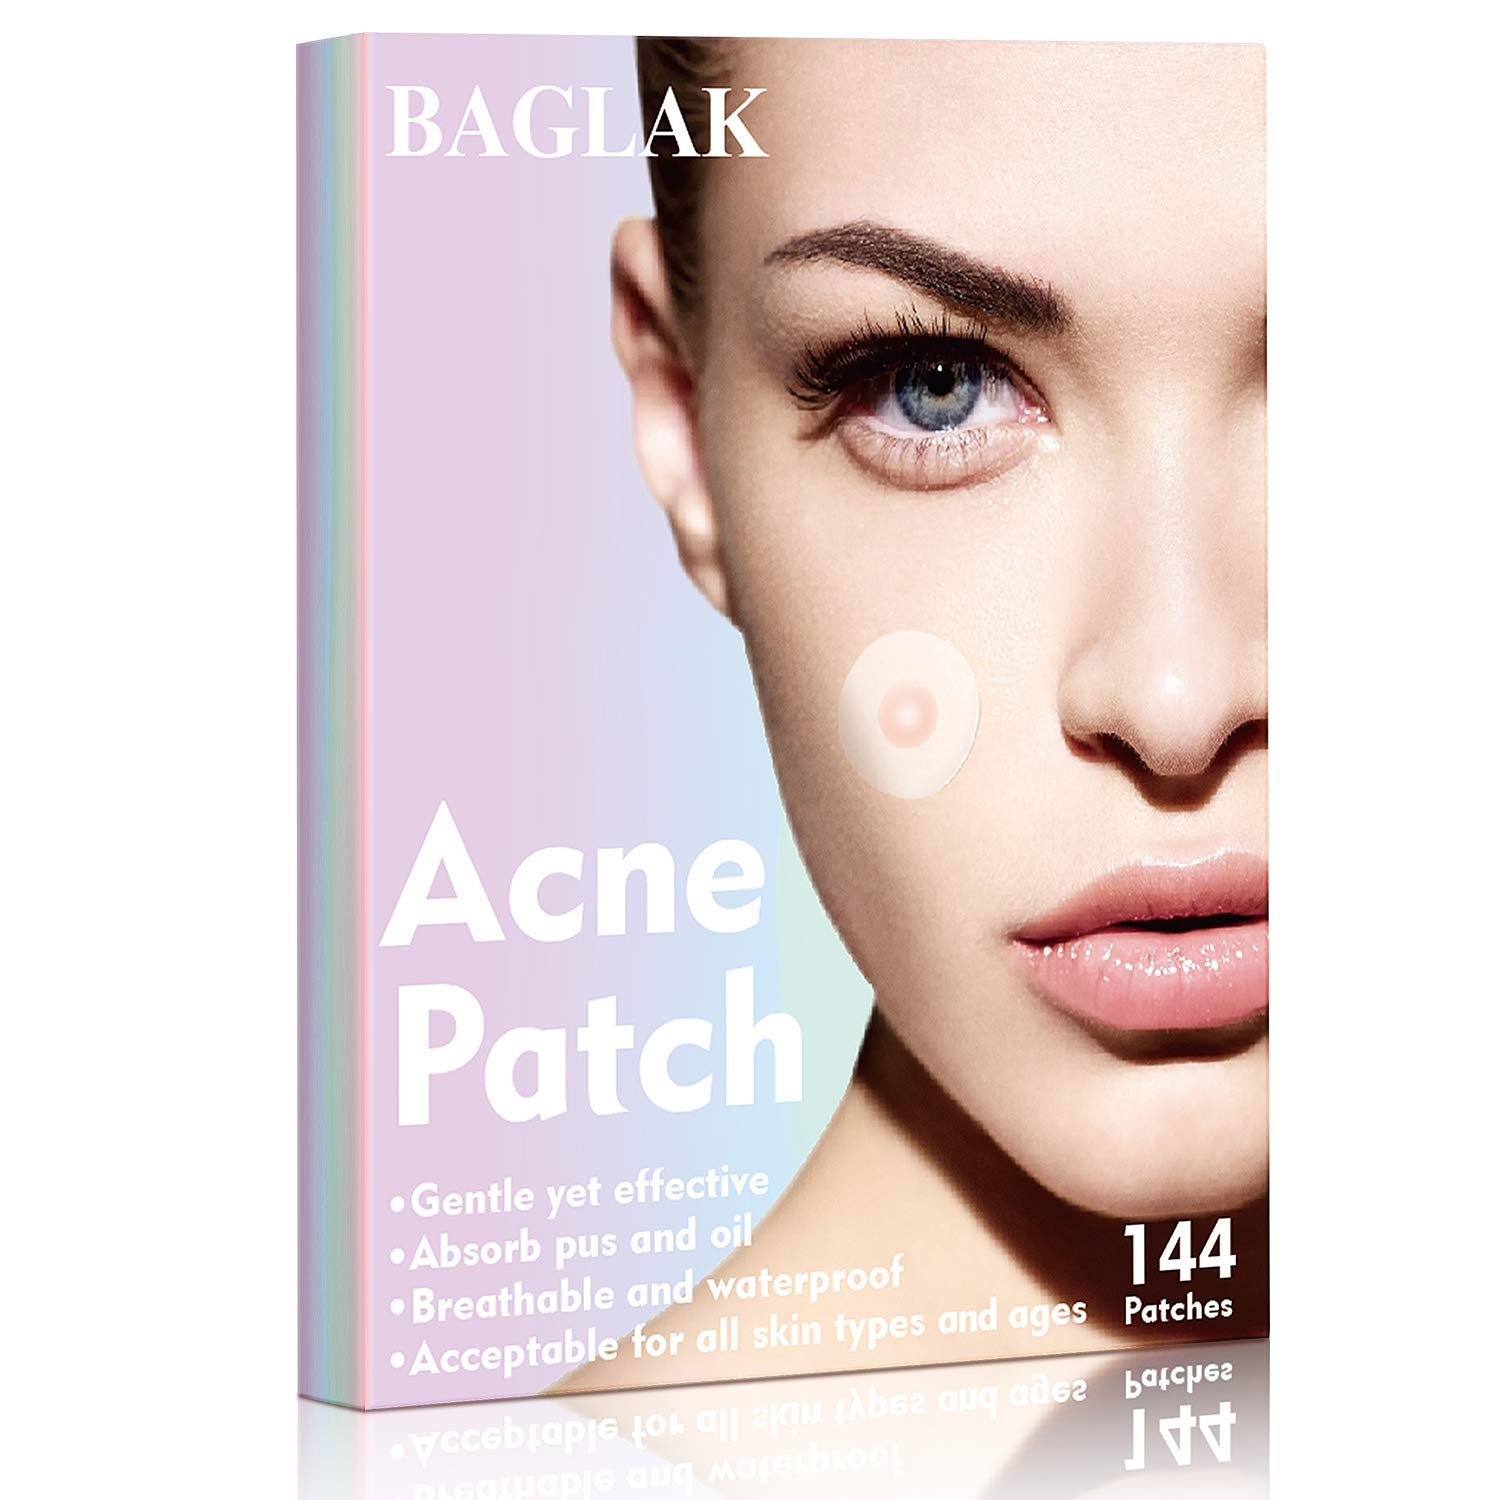 Acne Pimple Master Patch, Hydrocolloid Spot Treatment, Efficient And Fast, 144 Dots, Invisible, Waterproof, Breathable, Facial Stickers